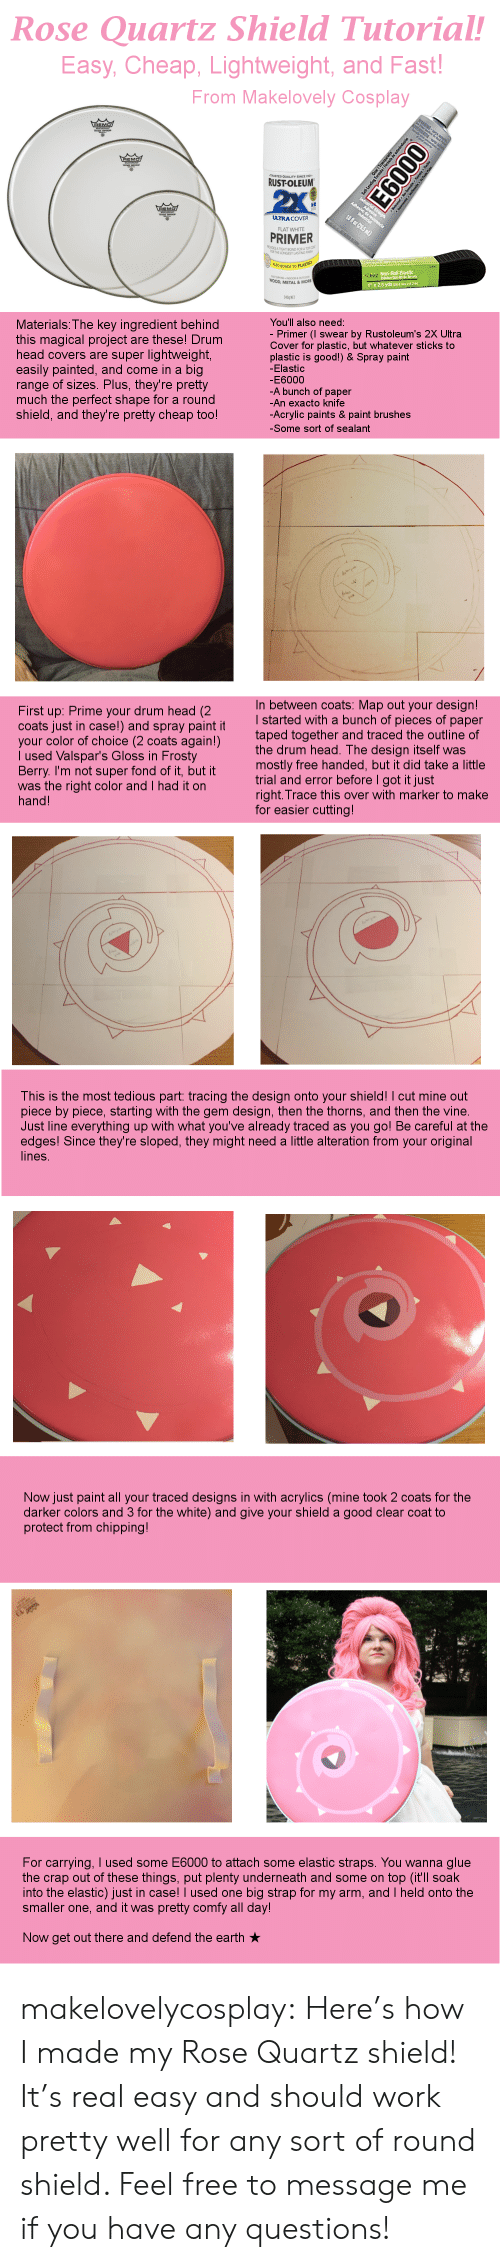 "Head, Tumblr, and Vine: Rose Quartz Shield Tutorial!  Easy, Cheap, Lightweight, and Fast  From Makelovely Cosplay  -TRUSTED QUALITY SINCE 192  RUSTOLEUM  ULTRA COVER  FLAT WHITE  PRIMER  TIGHT BOND FOR A TOPr  OGEST LASTING  ALSO BONDS TO  のritz  1"" x 2.5 yds (254 m"" x22  WOOD, METAL & MORE  400 NET  Materials: The key ingredient behind  this magical project are these! Drum  head covers are super lightweight  easily painted, and come in a big  range of sizes. Plus, they're pretty  much the perfect shape for a round  shield, and they're pretty cheap too!  You'll also need  - Primer(I swear by Rustoleum's 2X Ultra  Cover for plastic, but whatever sticks to  plastic is good!) &Spray paint  -Elastic  E6000  -A bunch of paper  An exacto knife  -Acrylic paints & paint brushes  -Some sort of sealant   n between coats: Map out your design!  started with a bunch of pieces of paper  taped together and traced the outline of  First up: Prime your drum head (2  coats just in case!) and spray paint  your color of choice (2 coats again!)  l used Valspar's Gloss in Frosty  Berry. I'm not super fond of it, but tro  was the right color and I had it on  hand!  tit  the drum head. The design itself was  mostly free handed, but it did take a little  trial and error before I got it just  right. Trace this over with marker to make  for easier cutting  This is the most tedious part: tracing the design onto your shield! I cut mine out  piece by piece, starting with the gem design, then the thorns, and then the vine.  Just line everything up with what you've already traced as you go! Be careful at the  edges! Since they're sloped, they might need a little alteration from your original  lines.   Now just paint all your traced designs in with acrylics (mine took 2 coats for the  darker colors and 3 for the white) and give your shield a good clear coat to  protect from chipping!  For carrying, I used some E6000 to attach some elastic straps. You wanna glue  the crap out of these things, put plenty underneath and some on top (it'll soak  into the elastic) just in case! I used one big strap for my arm, and I held onto the  smaller one, and it was pretty comfy all day  Now get out there and defend the earth makelovelycosplay:  Here's how I made my Rose Quartz shield! It's real easy and should work pretty well for any sort of round shield. Feel free to message me if you have any questions!"